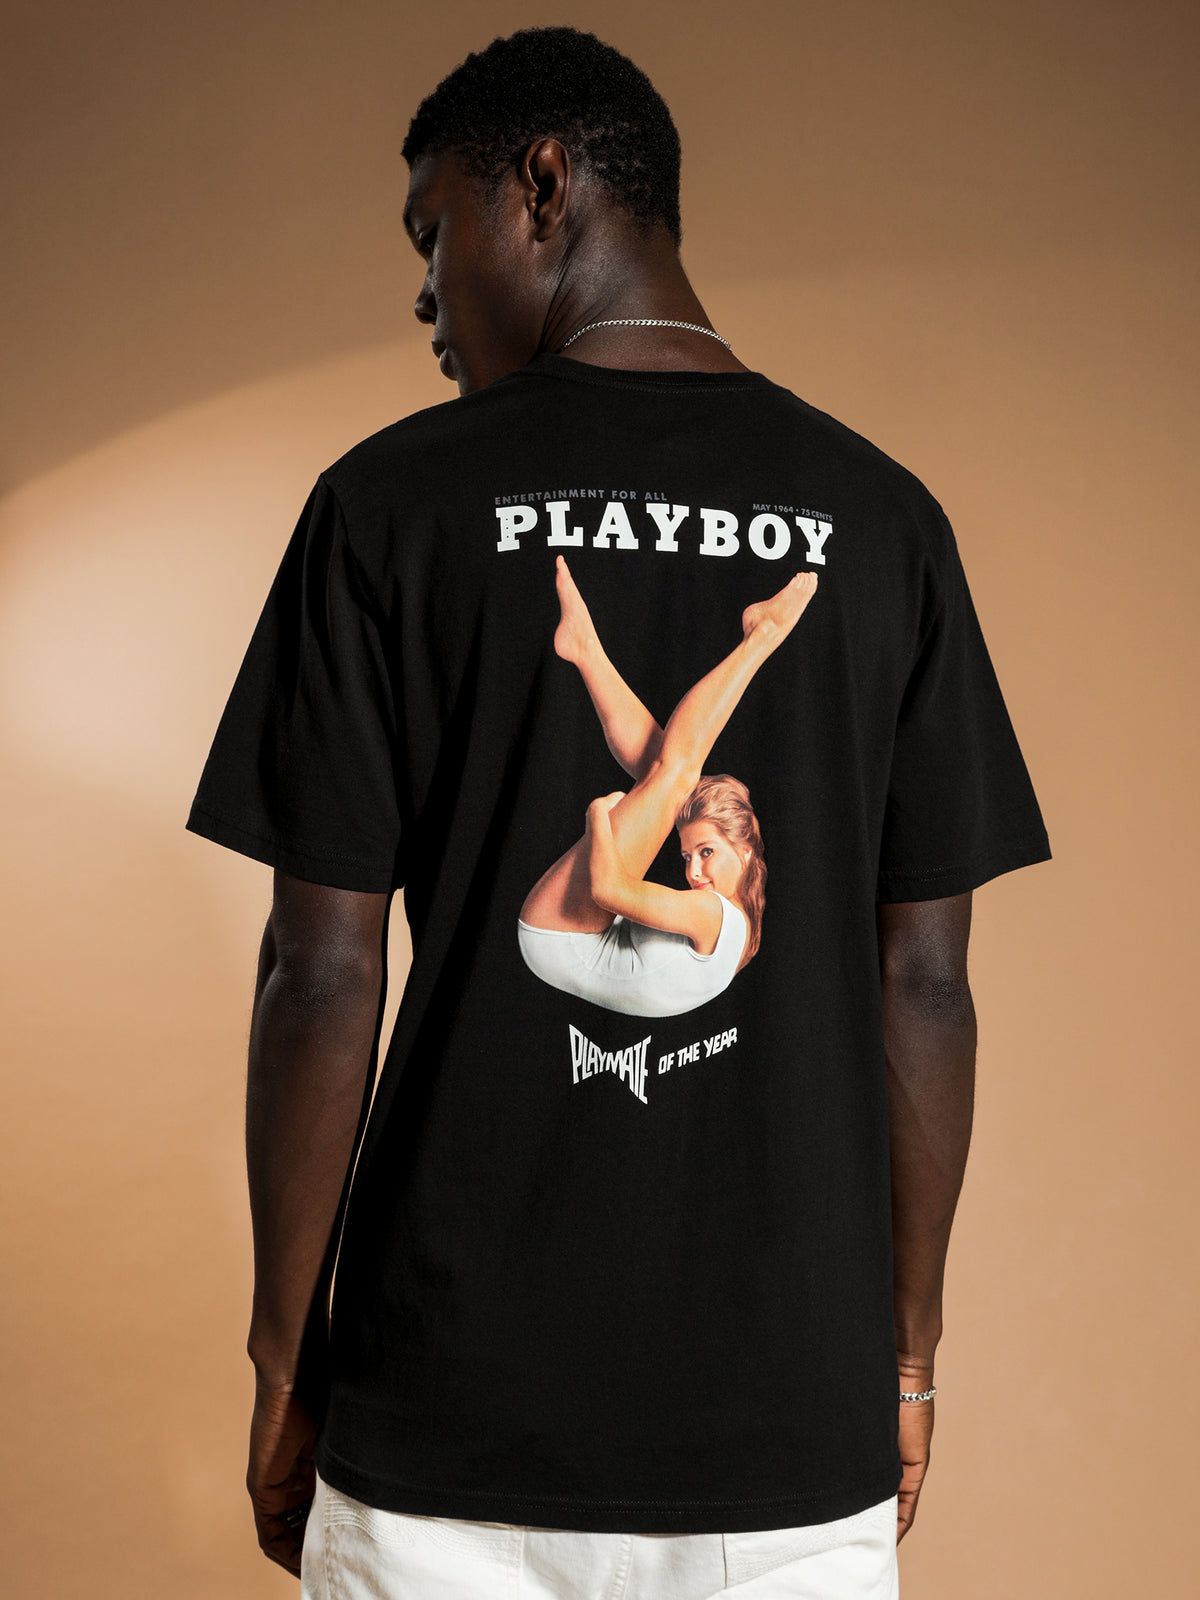 Playboy May 1964 T-Shirt in Black